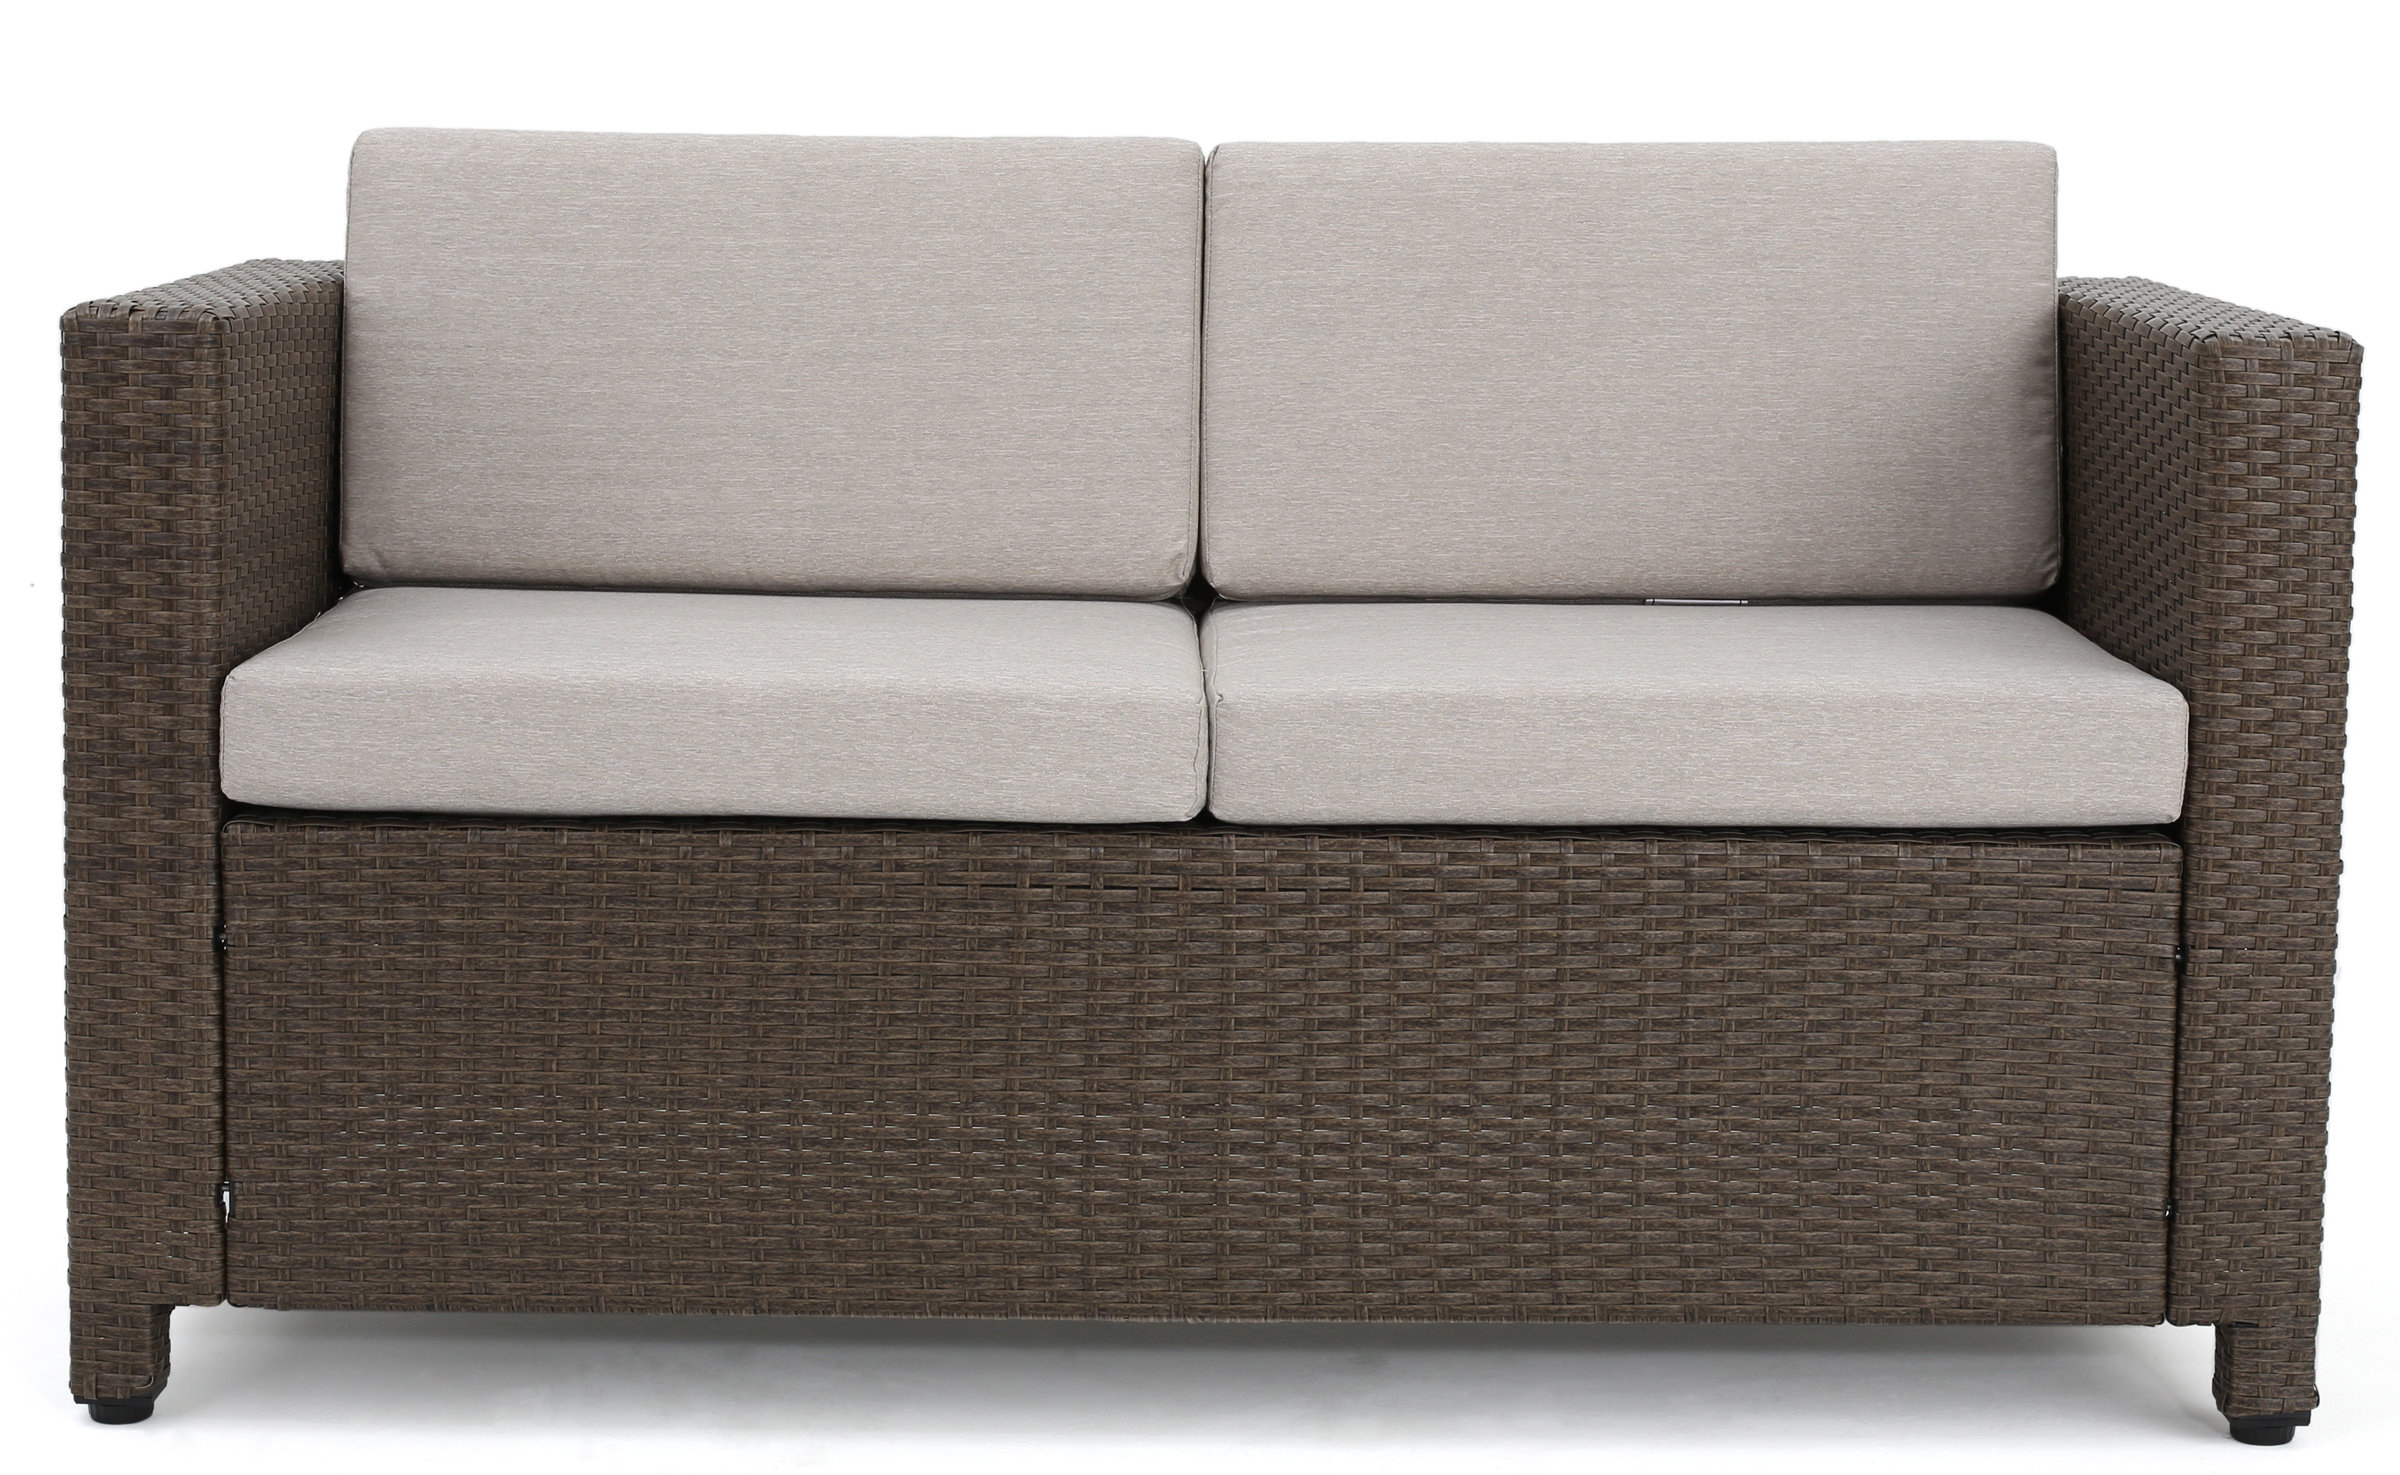 Furst Outdoor Loveseat With Cushions In Best And Newest Mendelson Loveseats With Cushion (View 19 of 20)